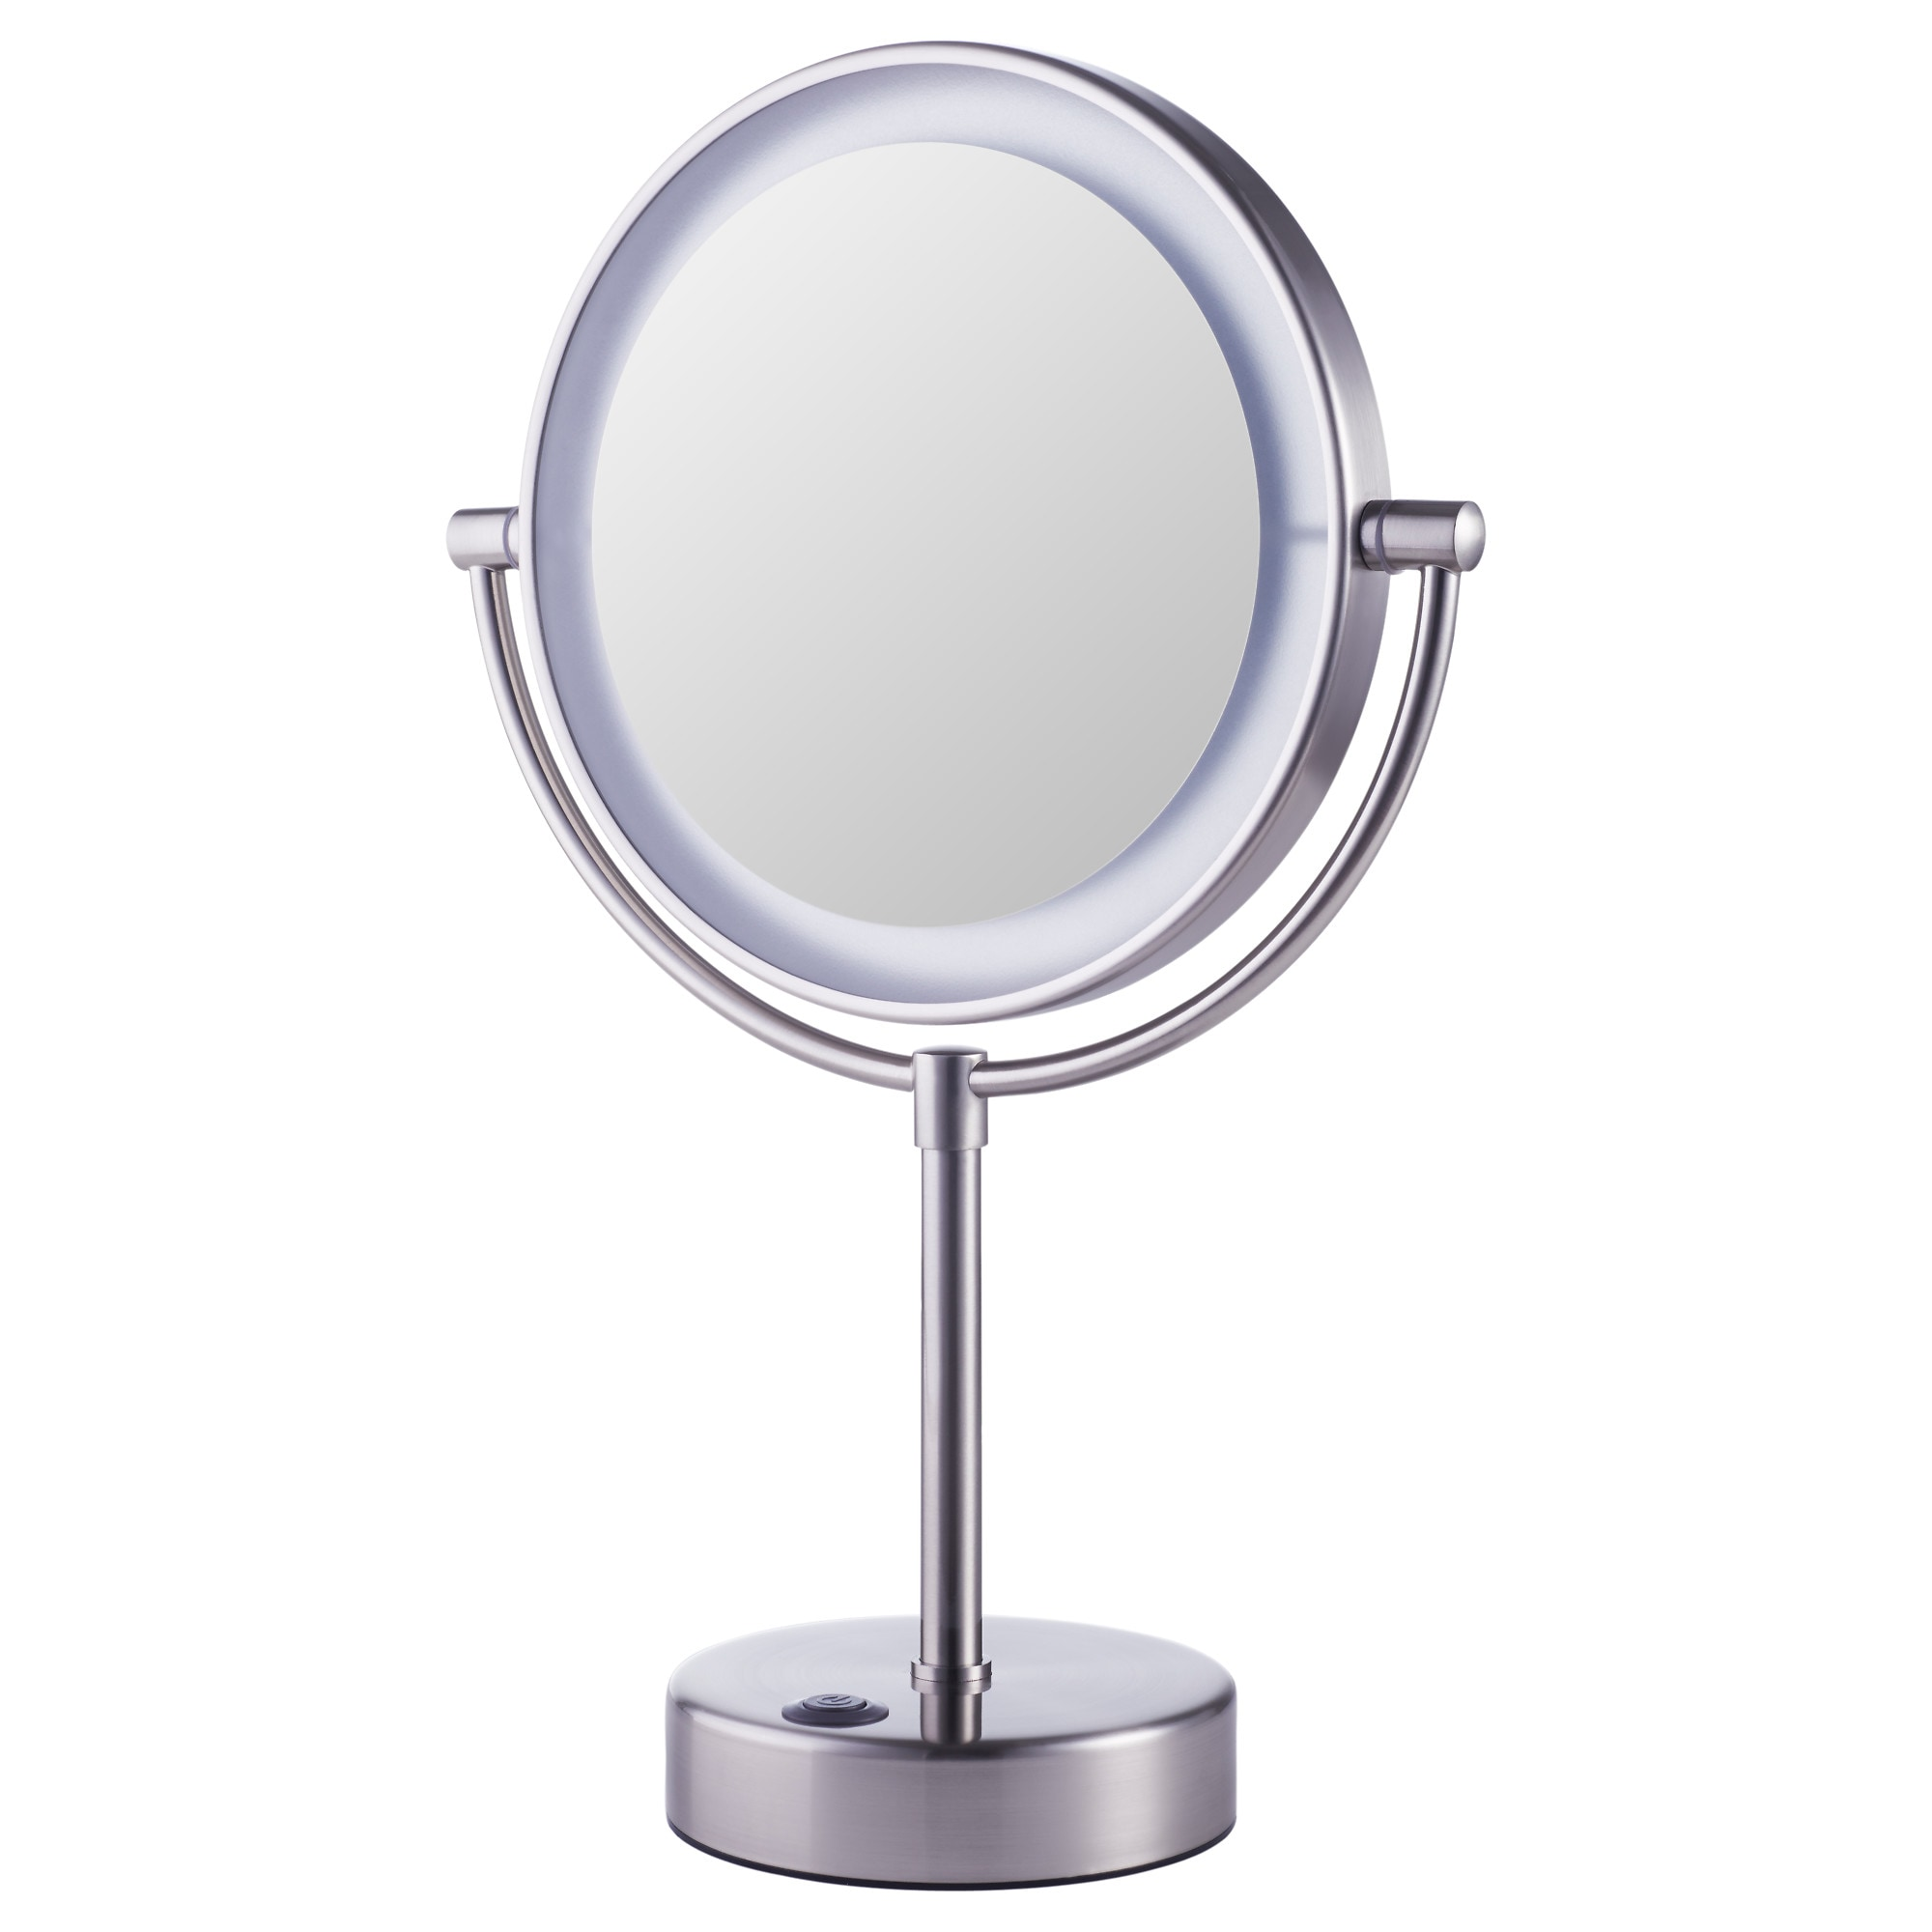 KAITUM Mirror with built-in light - IKEA